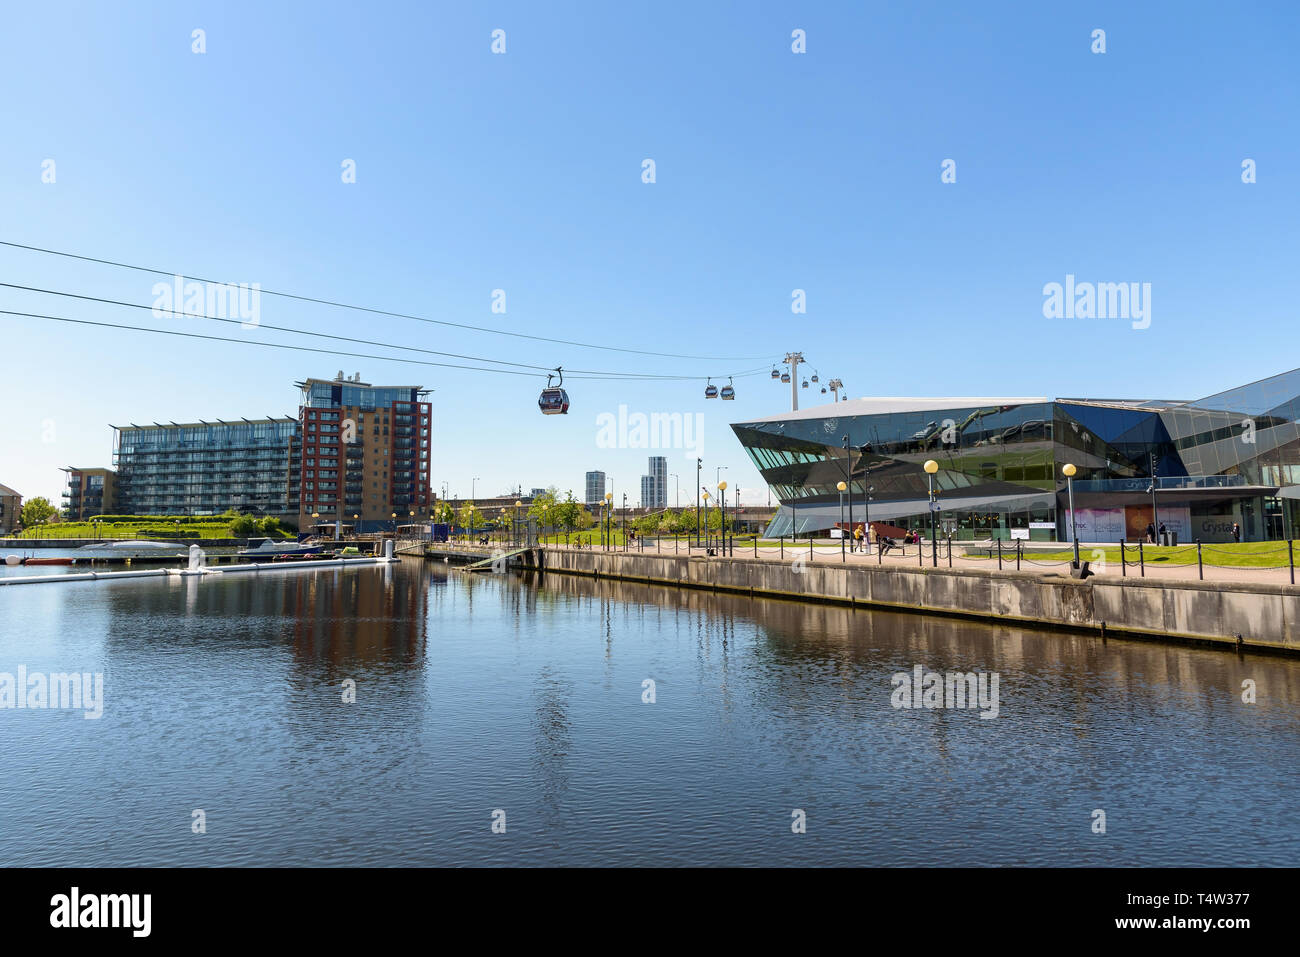 London, UK - May 1, 2018: Modern buildings and Emirates Air Line at Royal Victoria Dock in London's dockladns - Stock Image